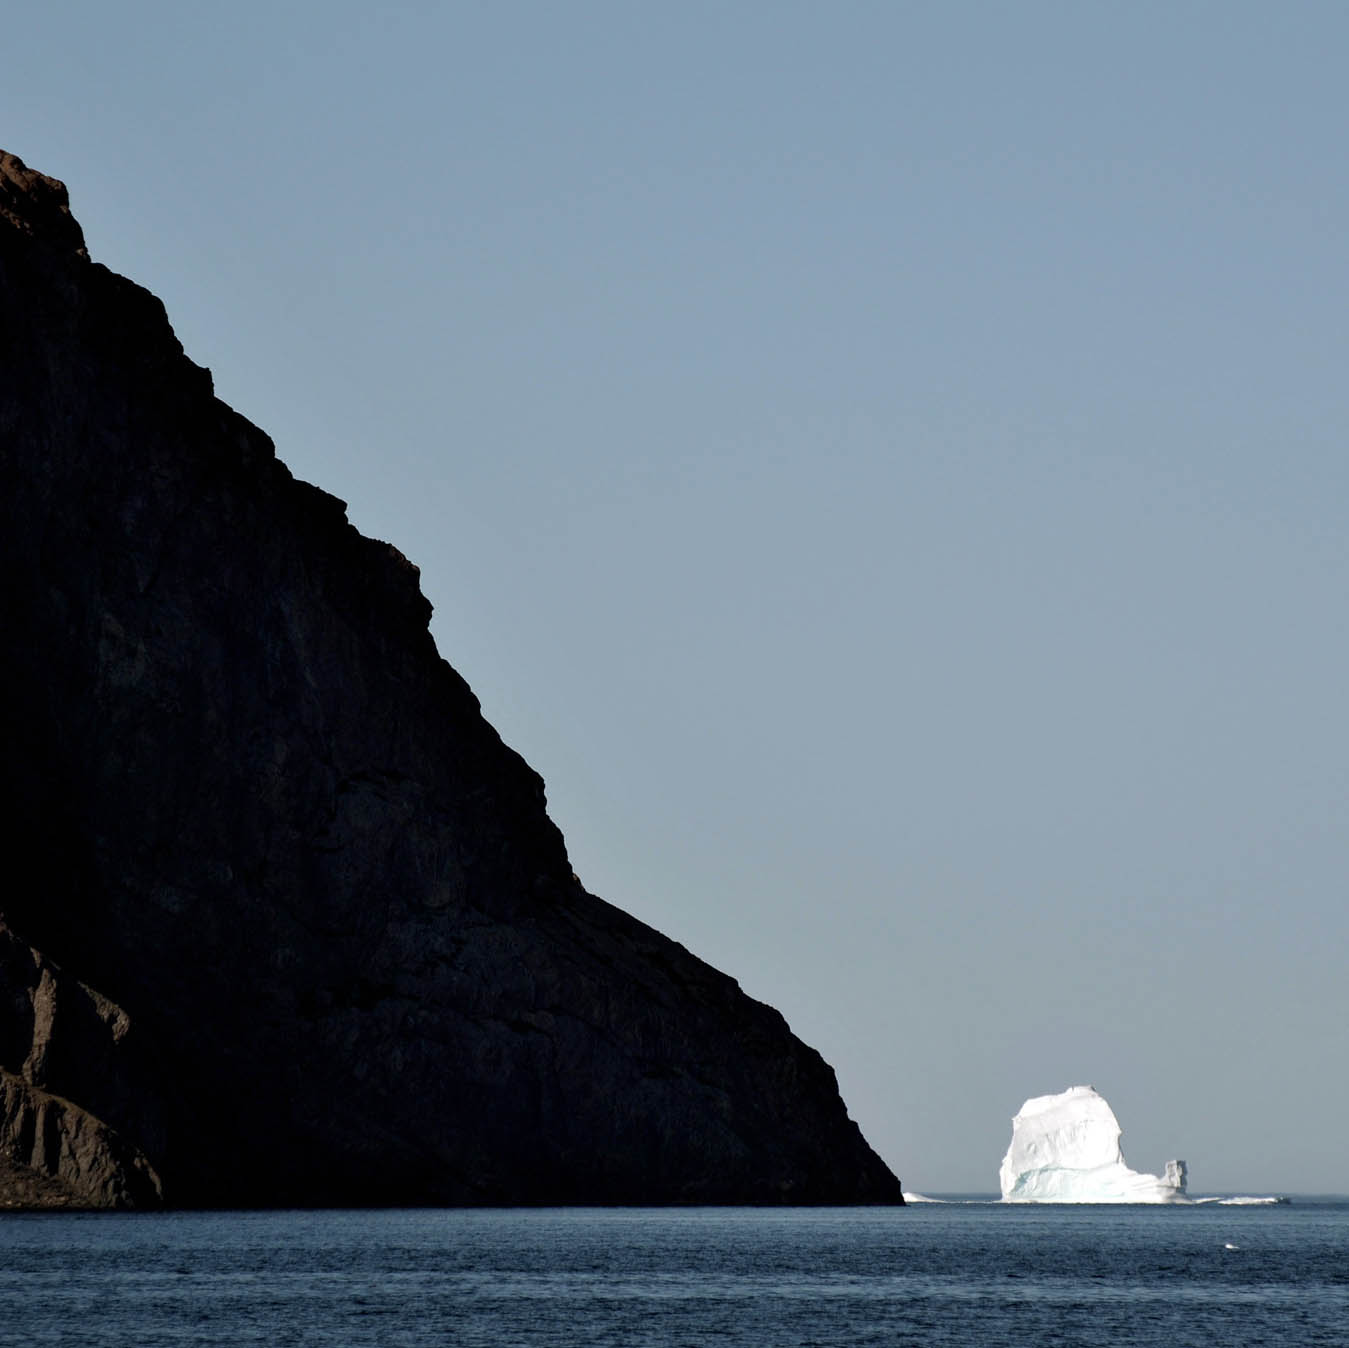 Ice and Mountain - Labrador Coast